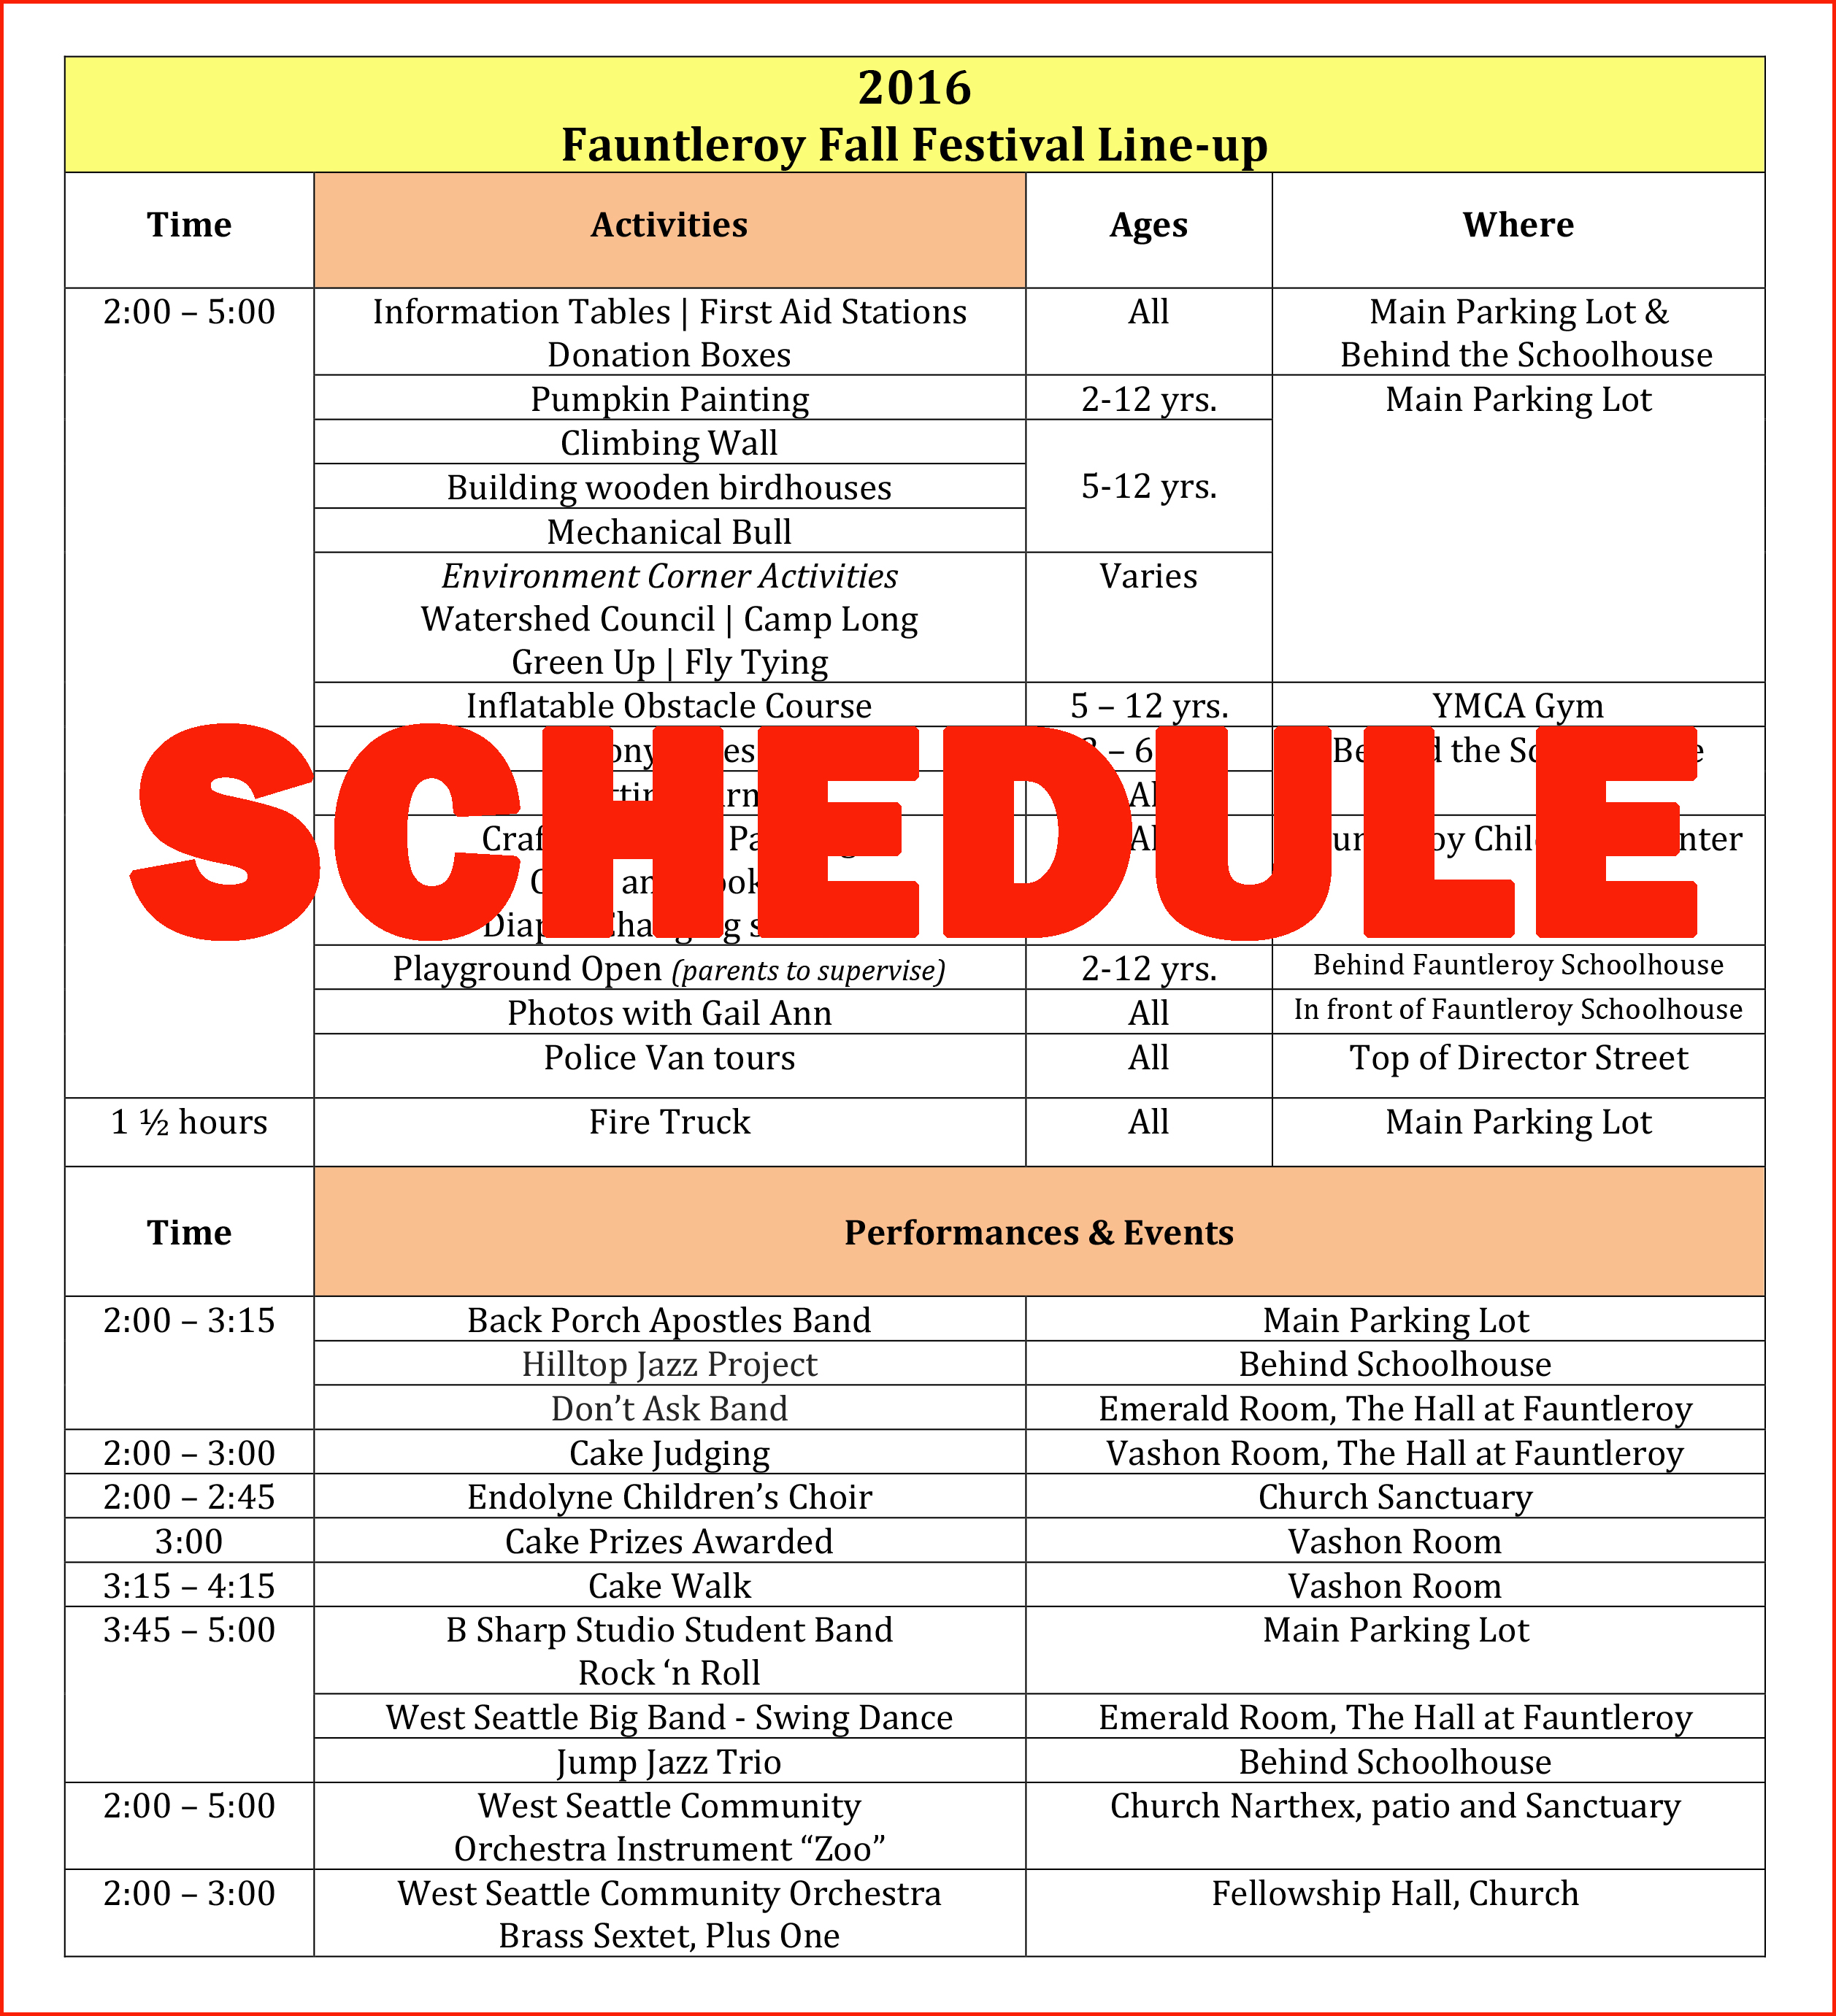 Fauntleroy Fall Festival 2016 schedule of events (PDF)